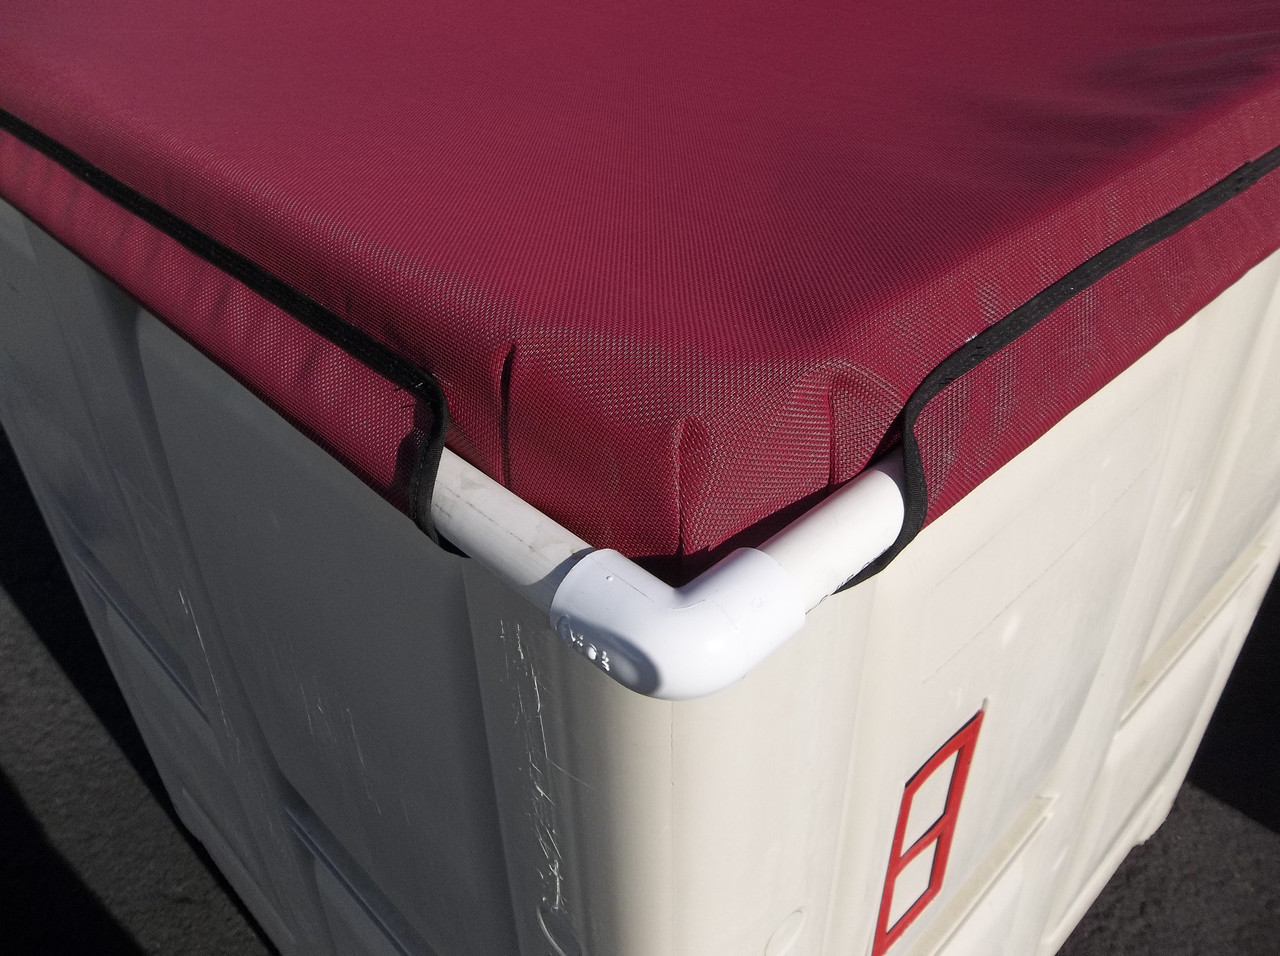 SLO Sail and Canvas Macro Bin Fermentation Covers are made of durable mesh stretched around a lightweight rigid plastic frame.